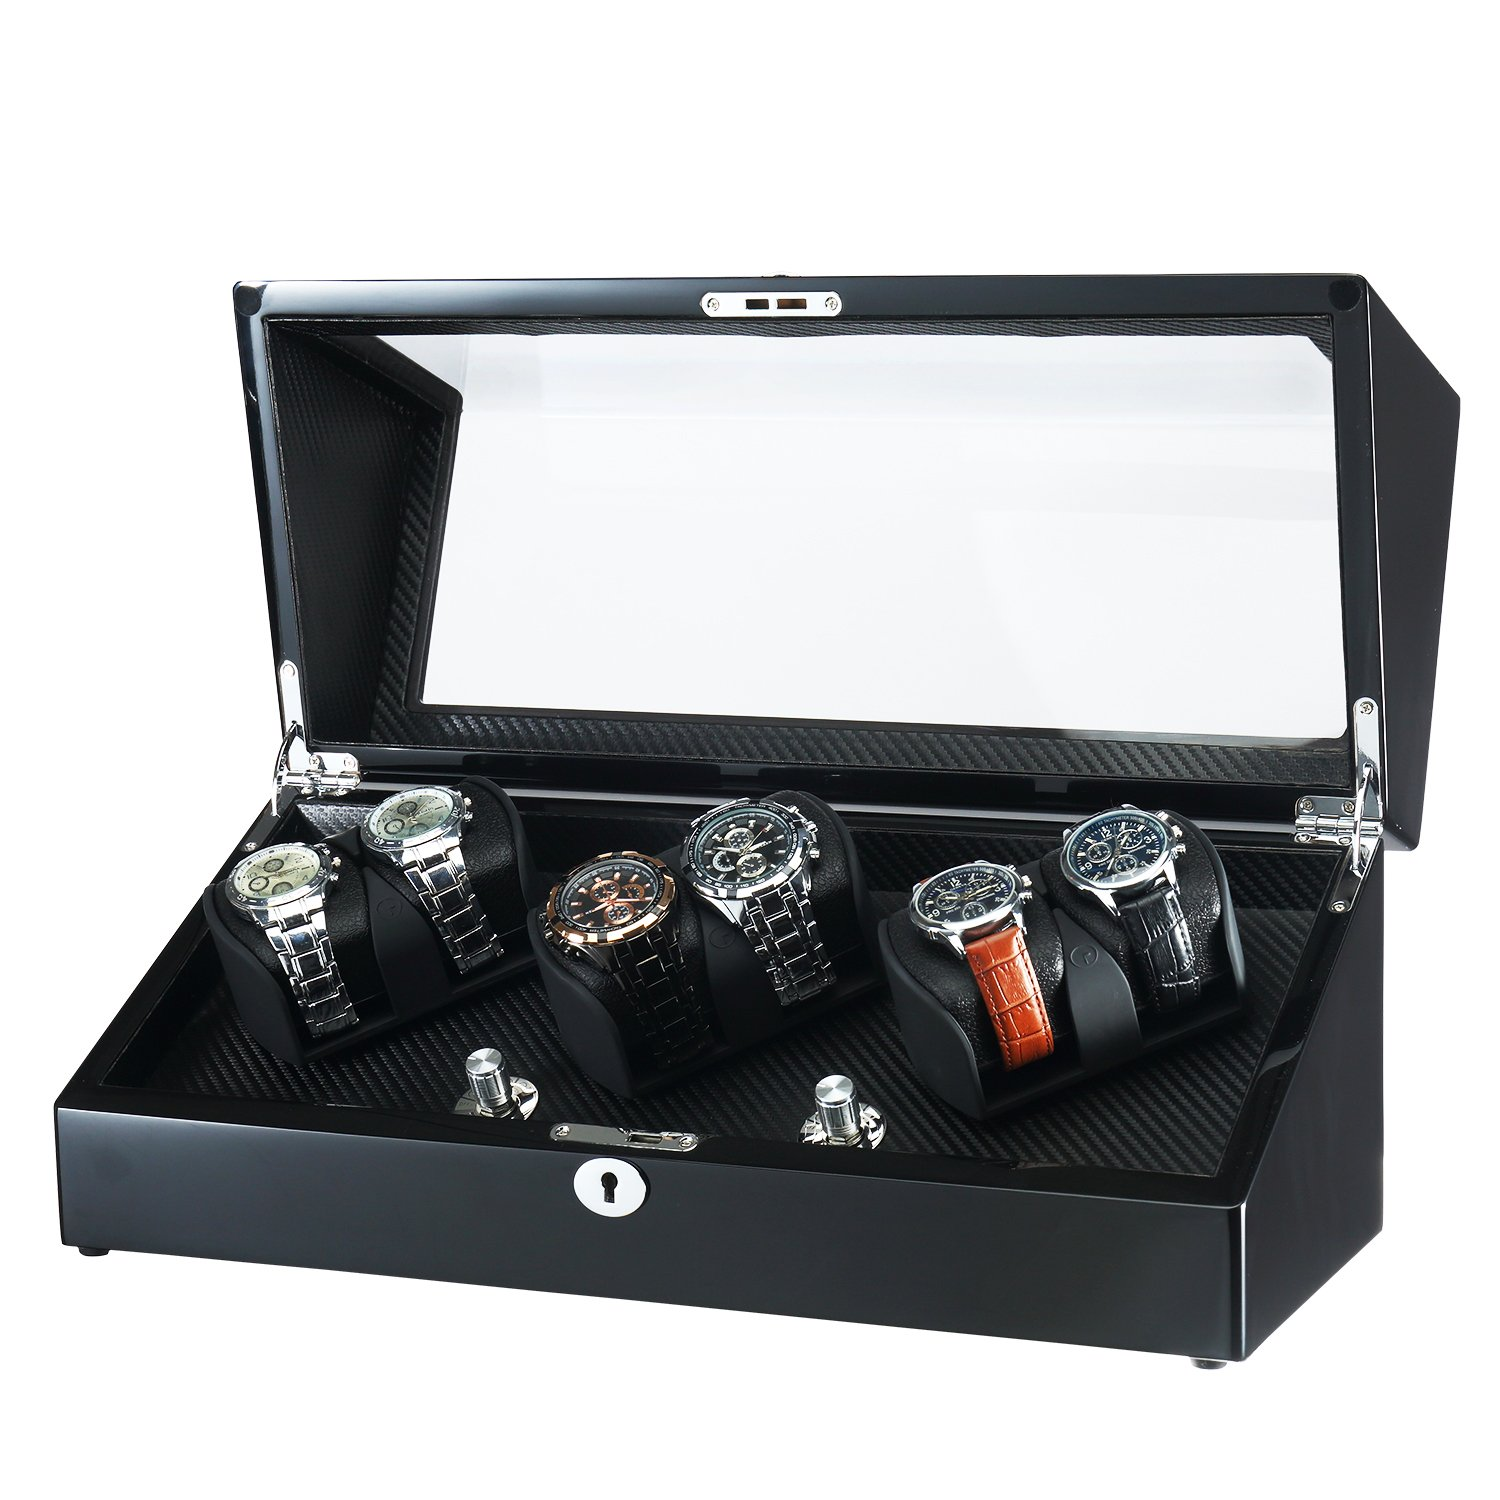 OLYMBROS Wooden 3 Rotors Automatic Watch Winder for 6 Watches with LED Light (WW-8118-BB-BP)